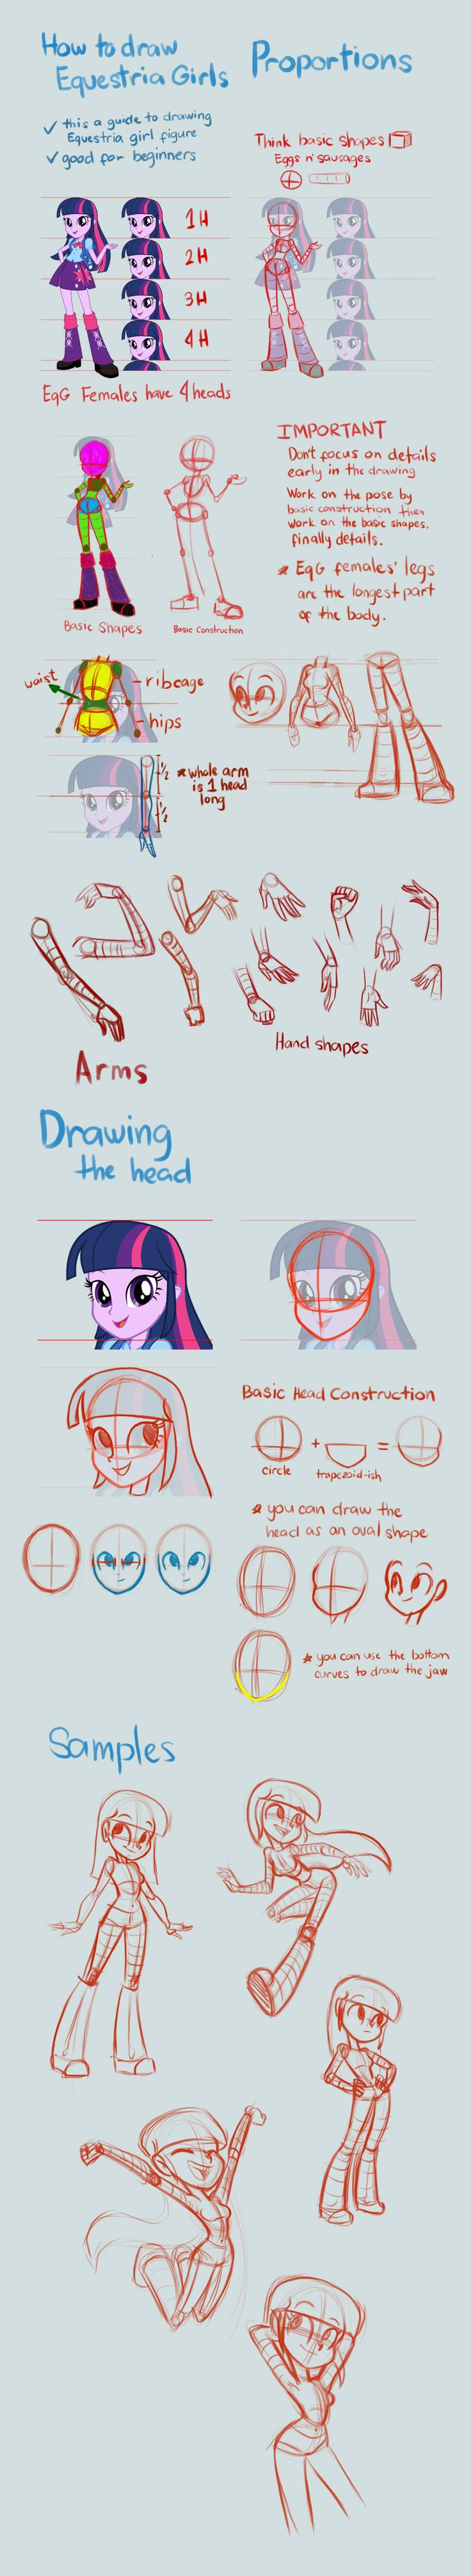 Equestria+Girls+Tutorial:+Proportions+by+Kanduli.deviantart.com+on+@deviantART